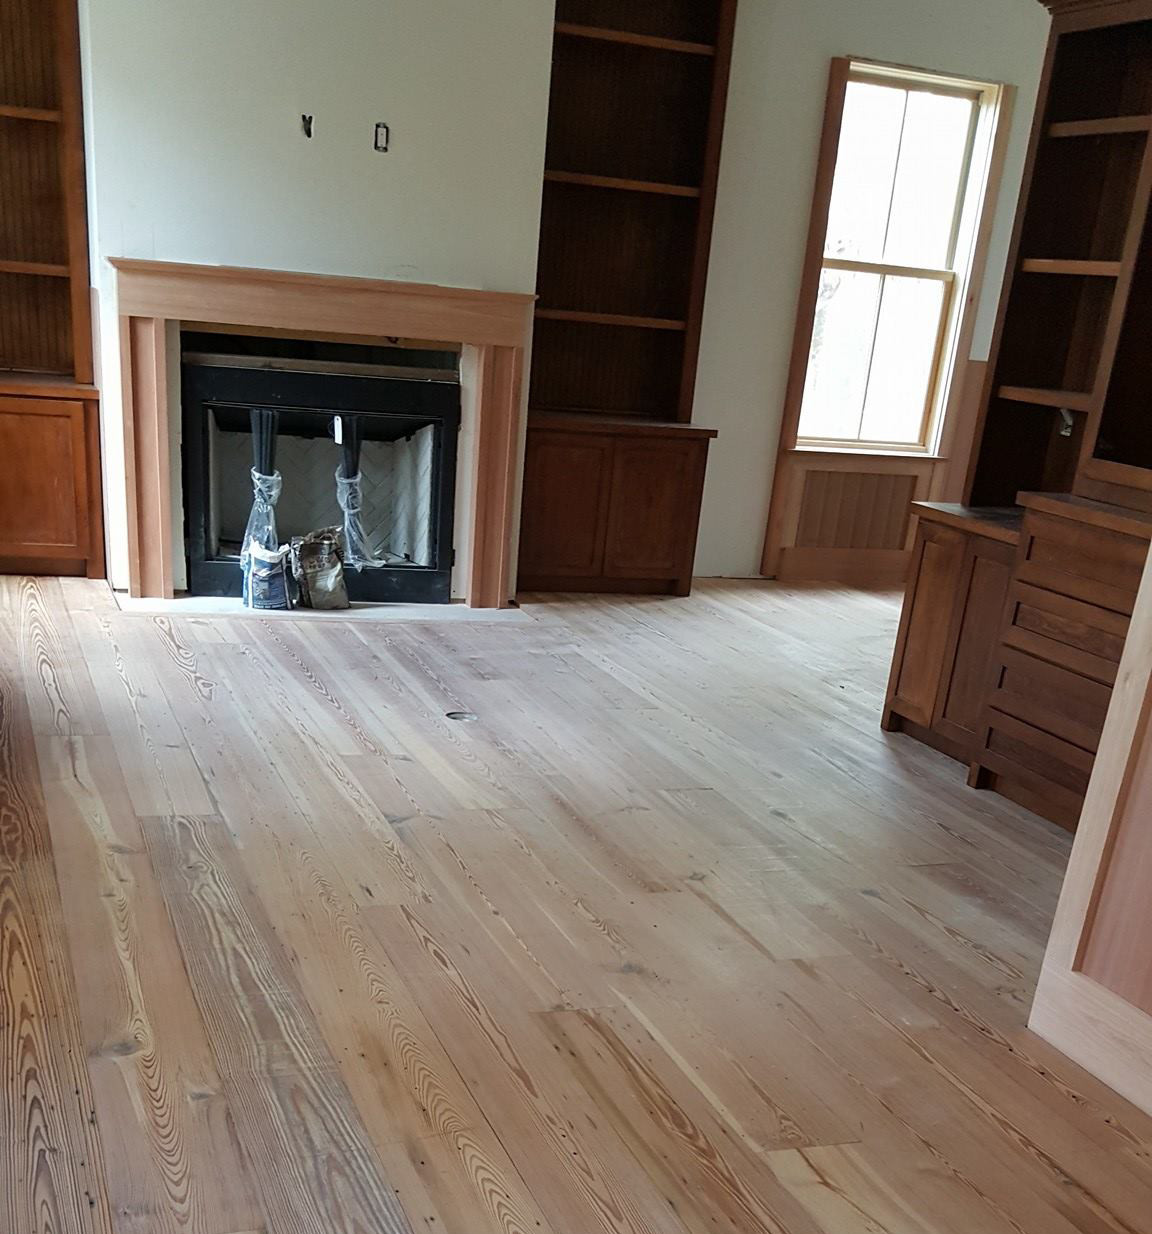 Hardwood Floor Varnish Of Olde Savannah Hardwood Flooring Regarding Sand and Refinish Existing Floors